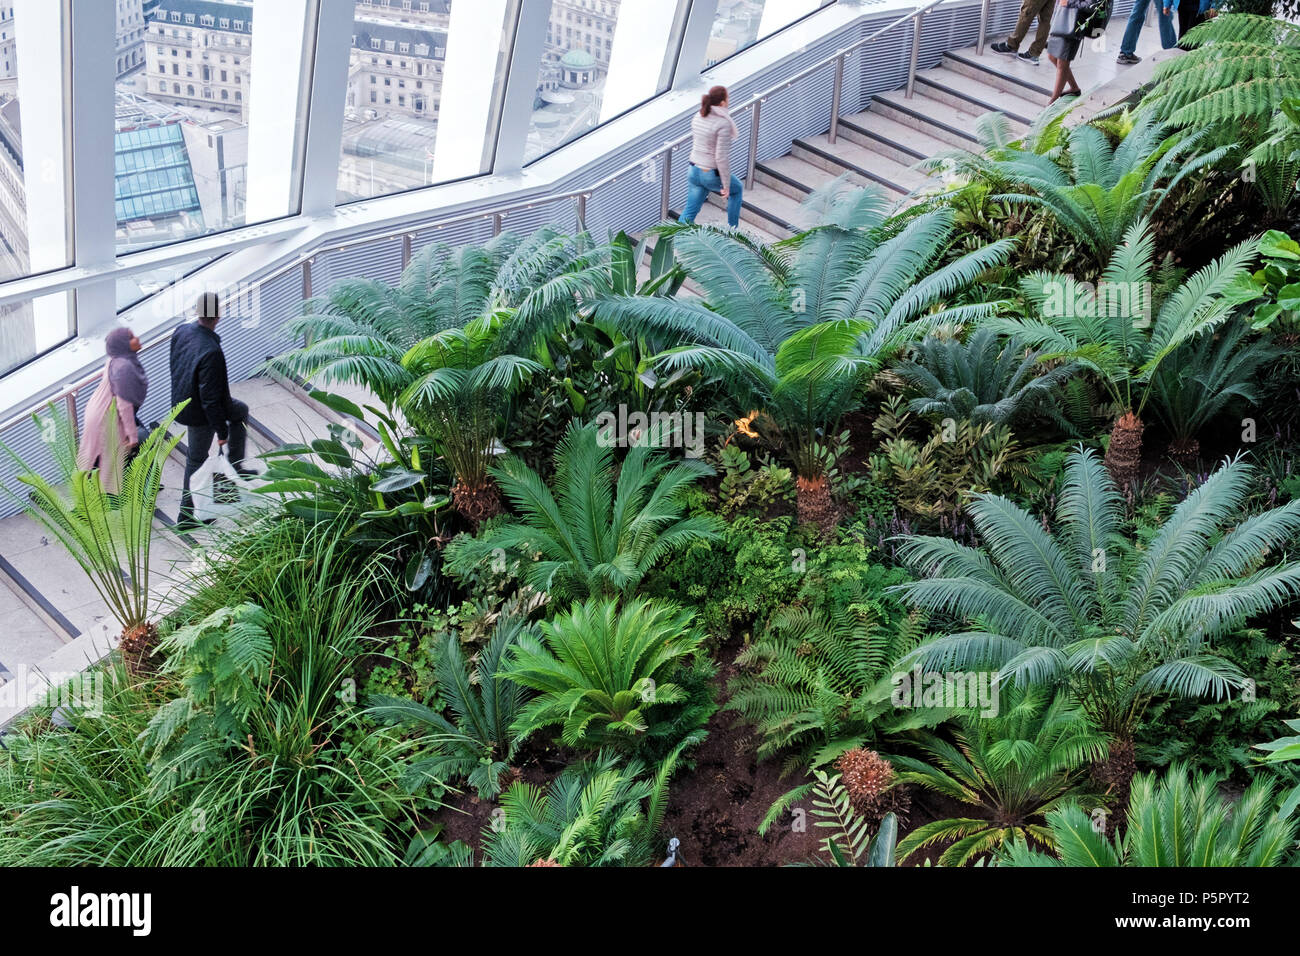 Plants & foliage at the Sky Garden, 20 Fenchurch St. Known as the Walkie Talkie. People on stairs. Windows with view of London. Horizontal. - Stock Image